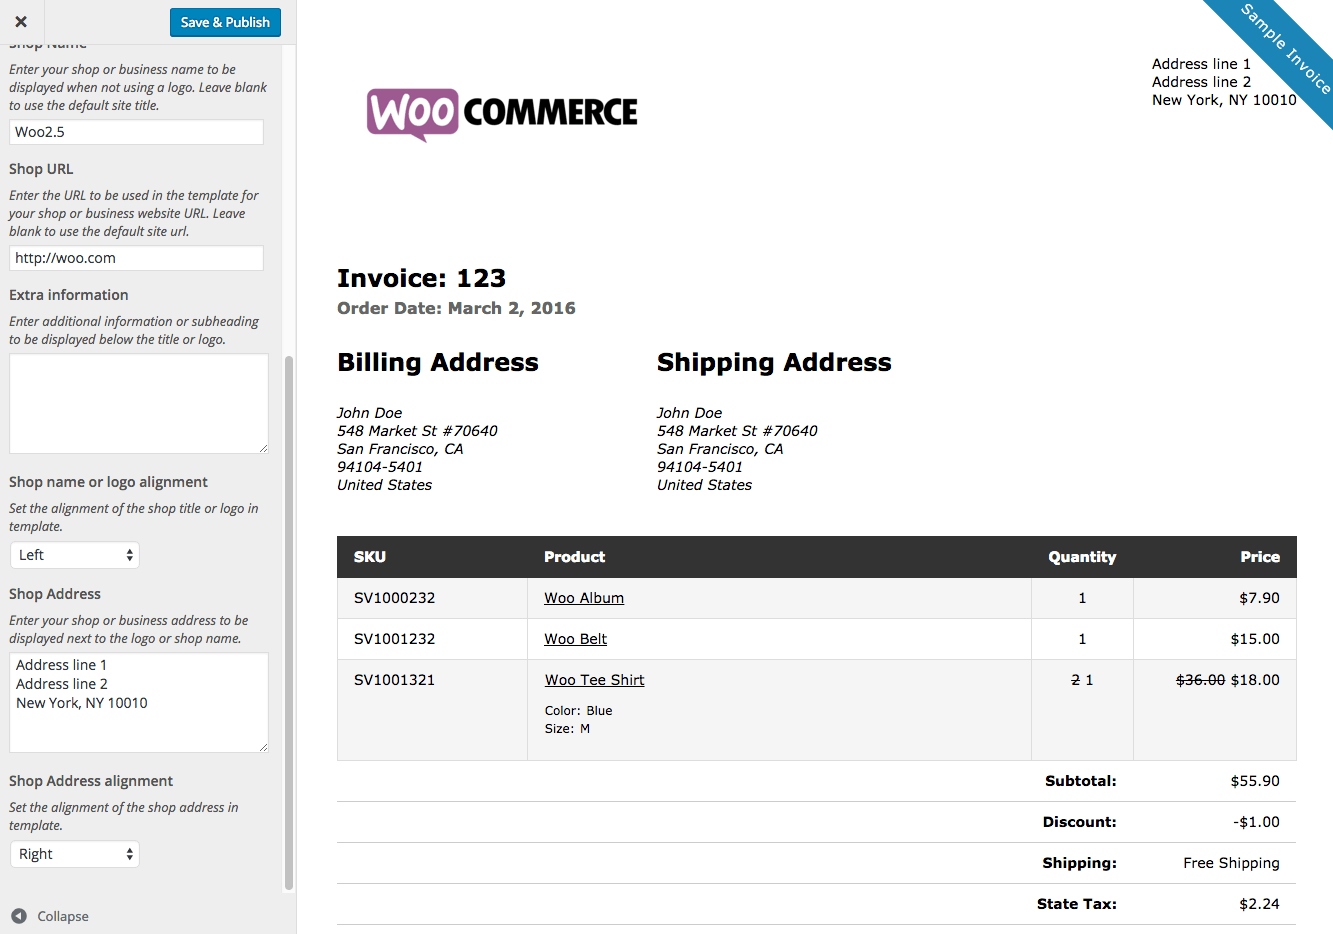 Laceychabertus  Mesmerizing Woocommerce Print Invoices Amp Packing Lists  Woocommerce Docs With Lovable Woocommerce Print Invoices  Packing Lists Customizer With Beauteous Find Invoice Price Also Vehicle Invoice In Addition Invoice Image And Sale Invoice As Well As Simple Invoice Template Excel Additionally Bill Invoice From Docswoocommercecom With Laceychabertus  Lovable Woocommerce Print Invoices Amp Packing Lists  Woocommerce Docs With Beauteous Woocommerce Print Invoices  Packing Lists Customizer And Mesmerizing Find Invoice Price Also Vehicle Invoice In Addition Invoice Image From Docswoocommercecom